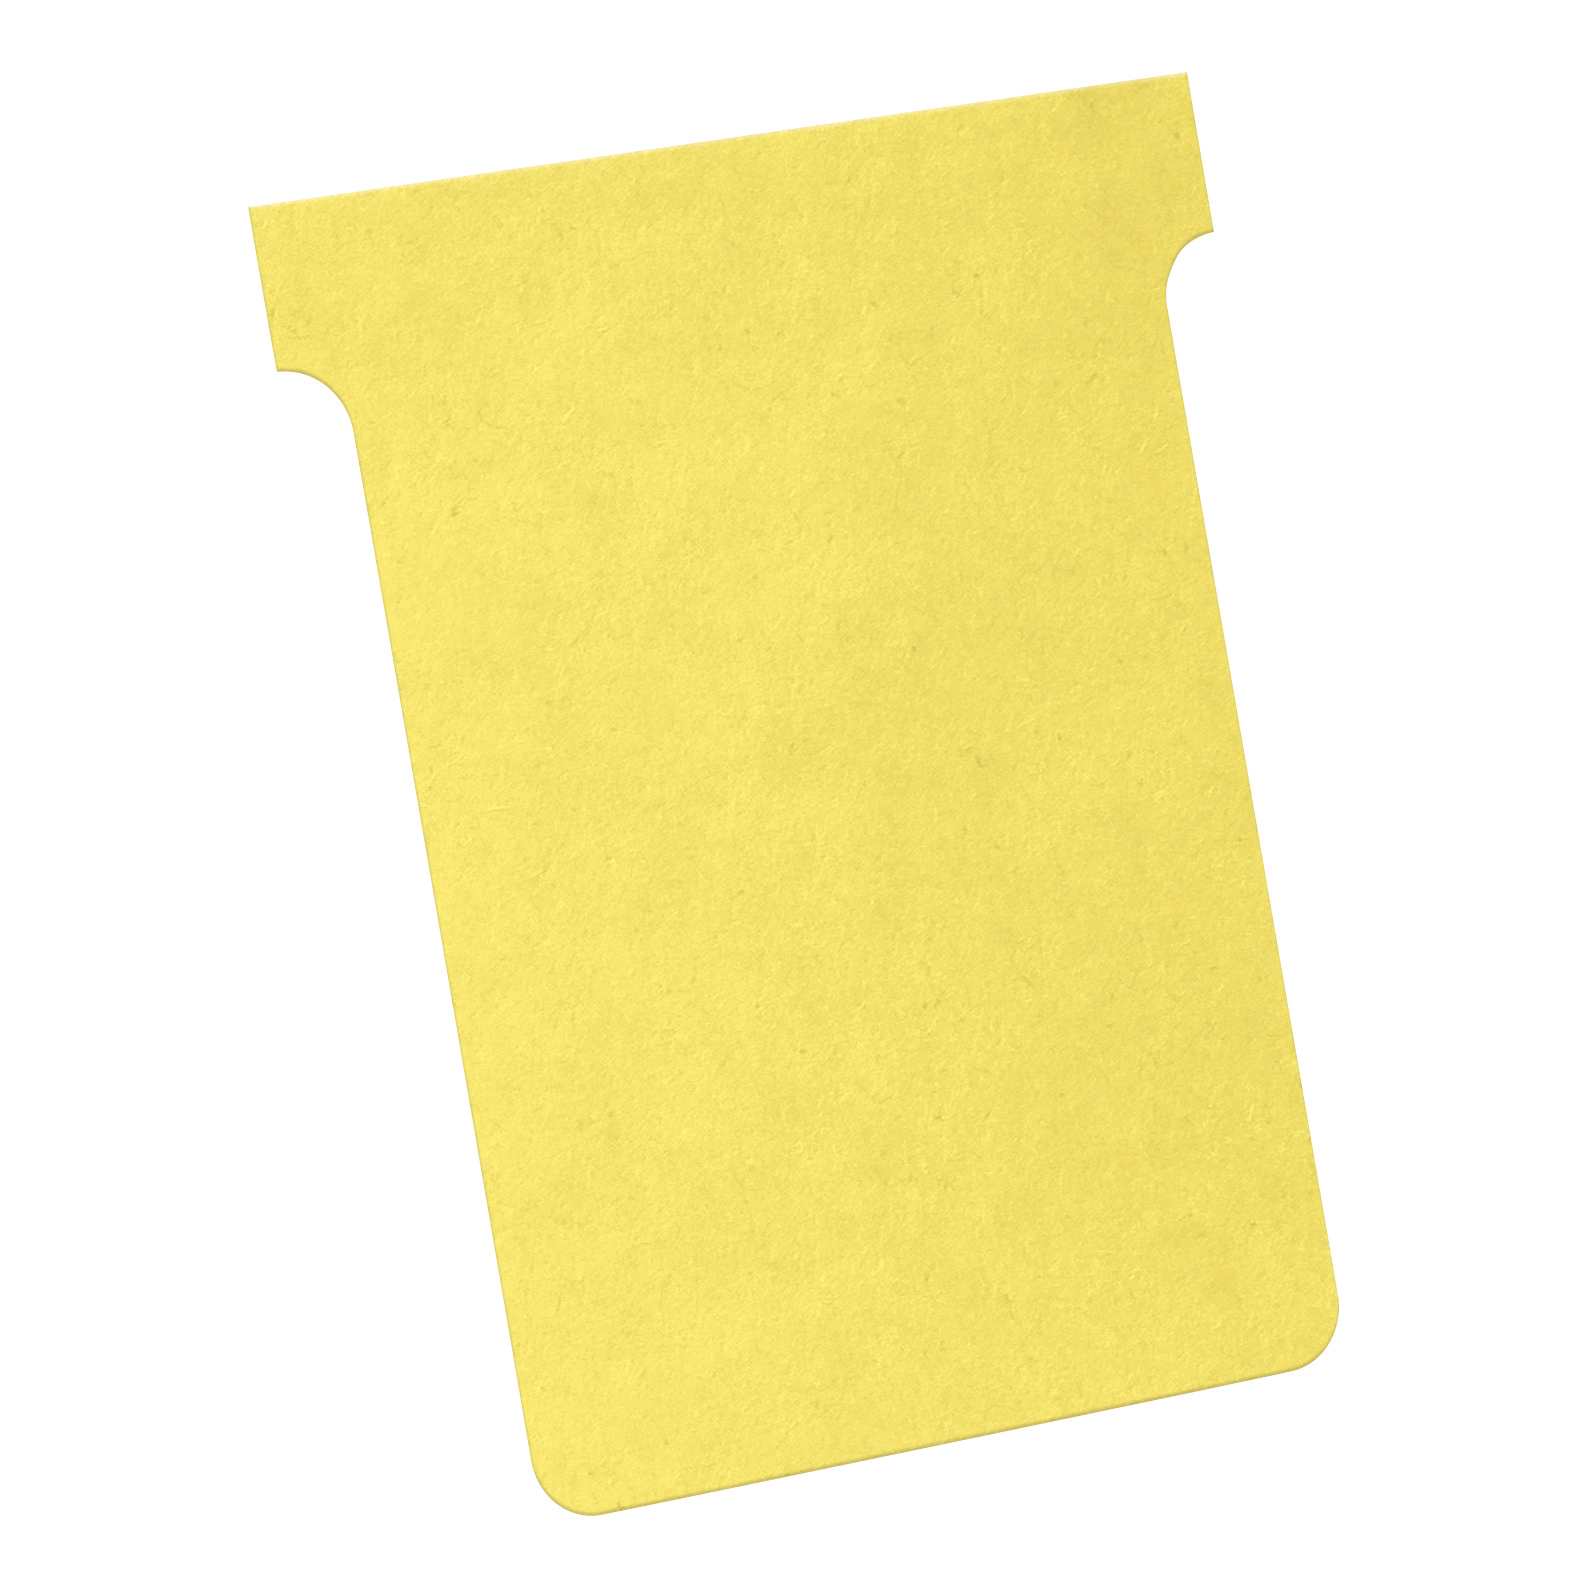 Nobo T-Cards 160gsm Tab Top 15mm W92x Bottom W80x Full H120mm Size 3 Yellow Ref 2003004 [Pack 100]